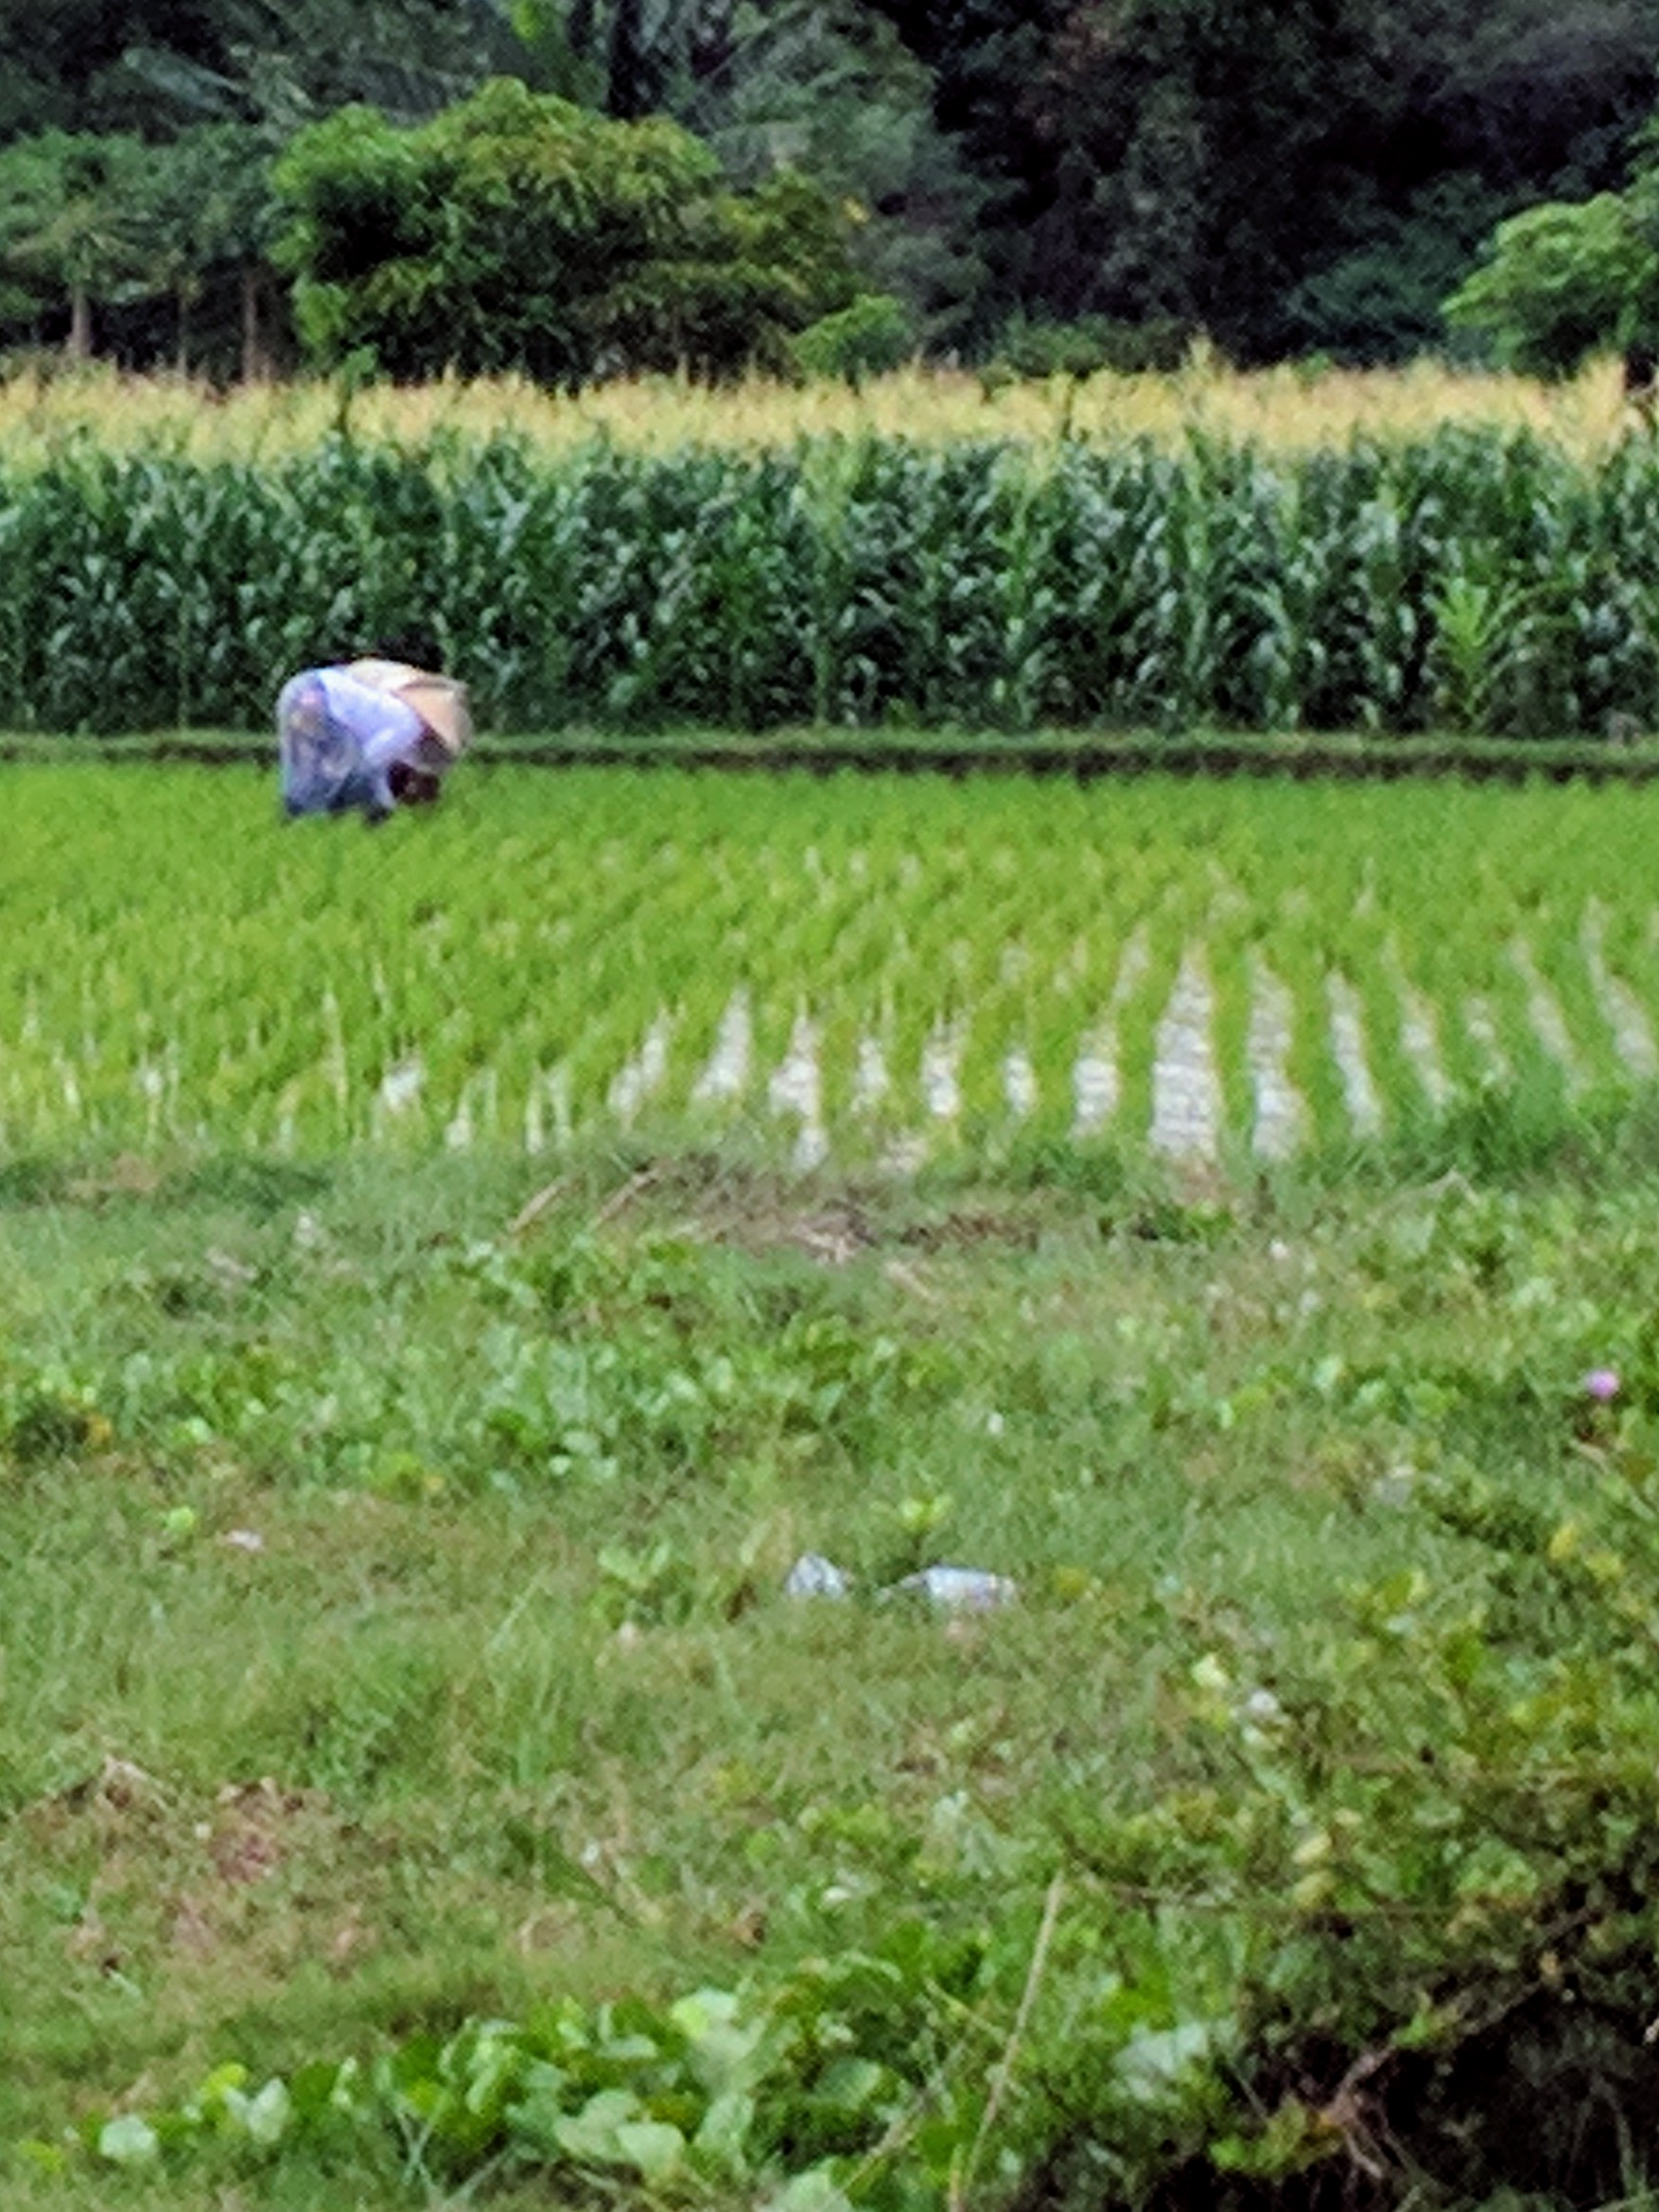 Gruelling work in the rice paddy